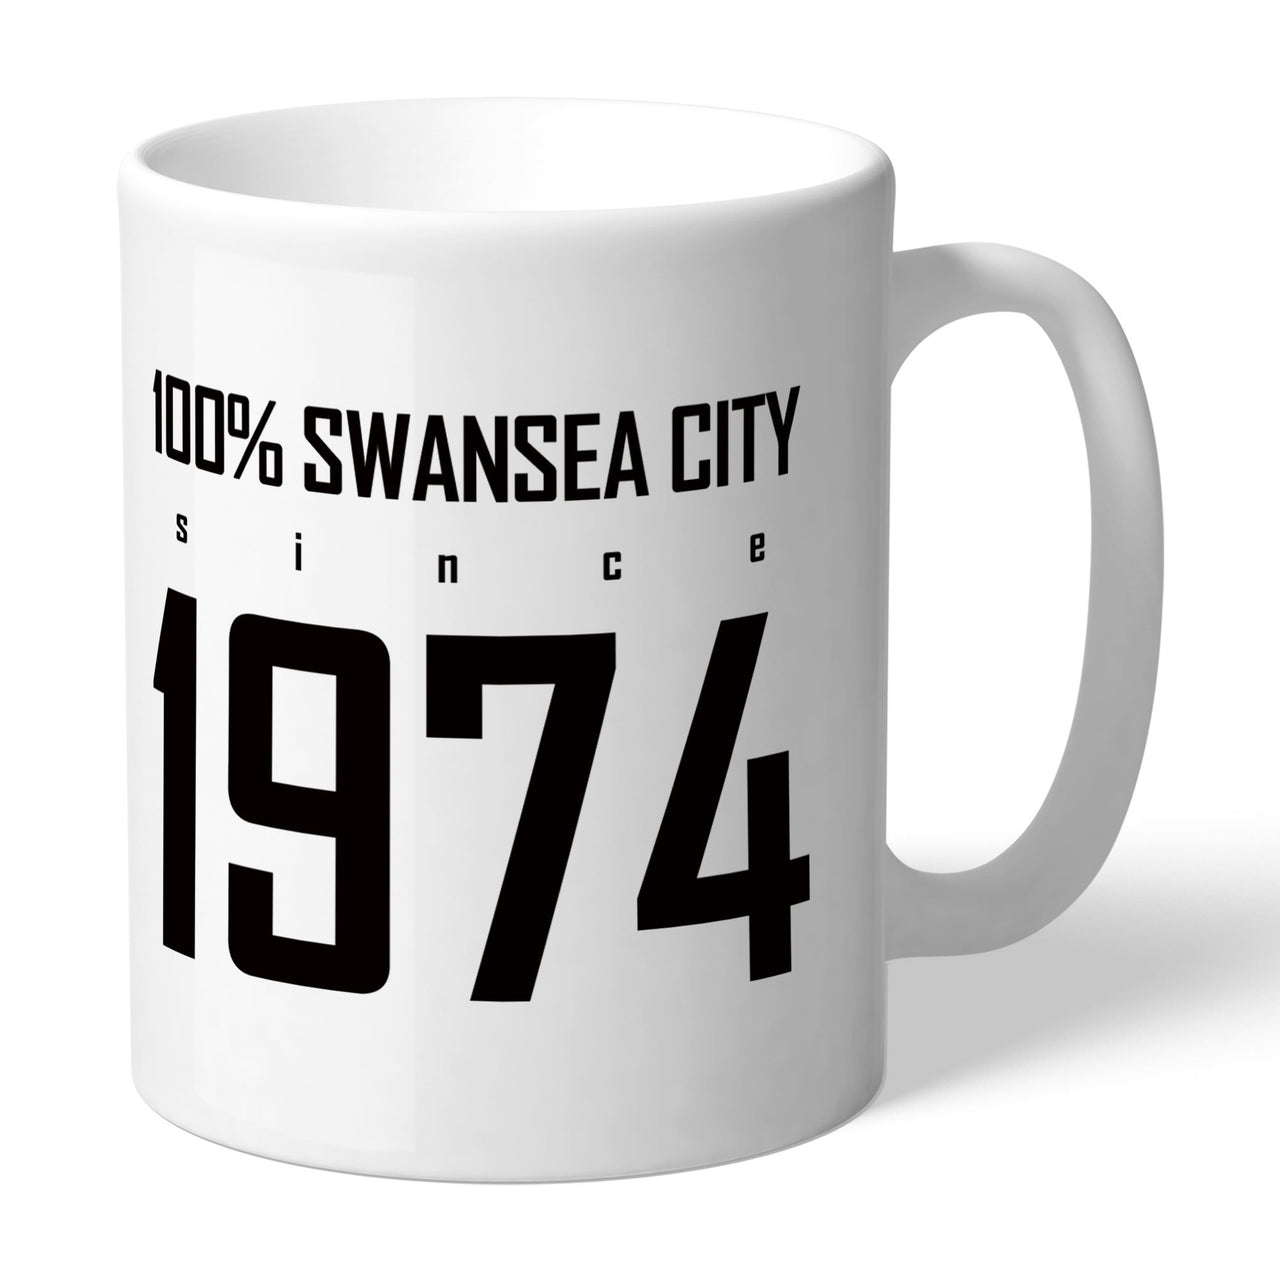 Swansea City AFC 100 Percent Mugs, Gifts